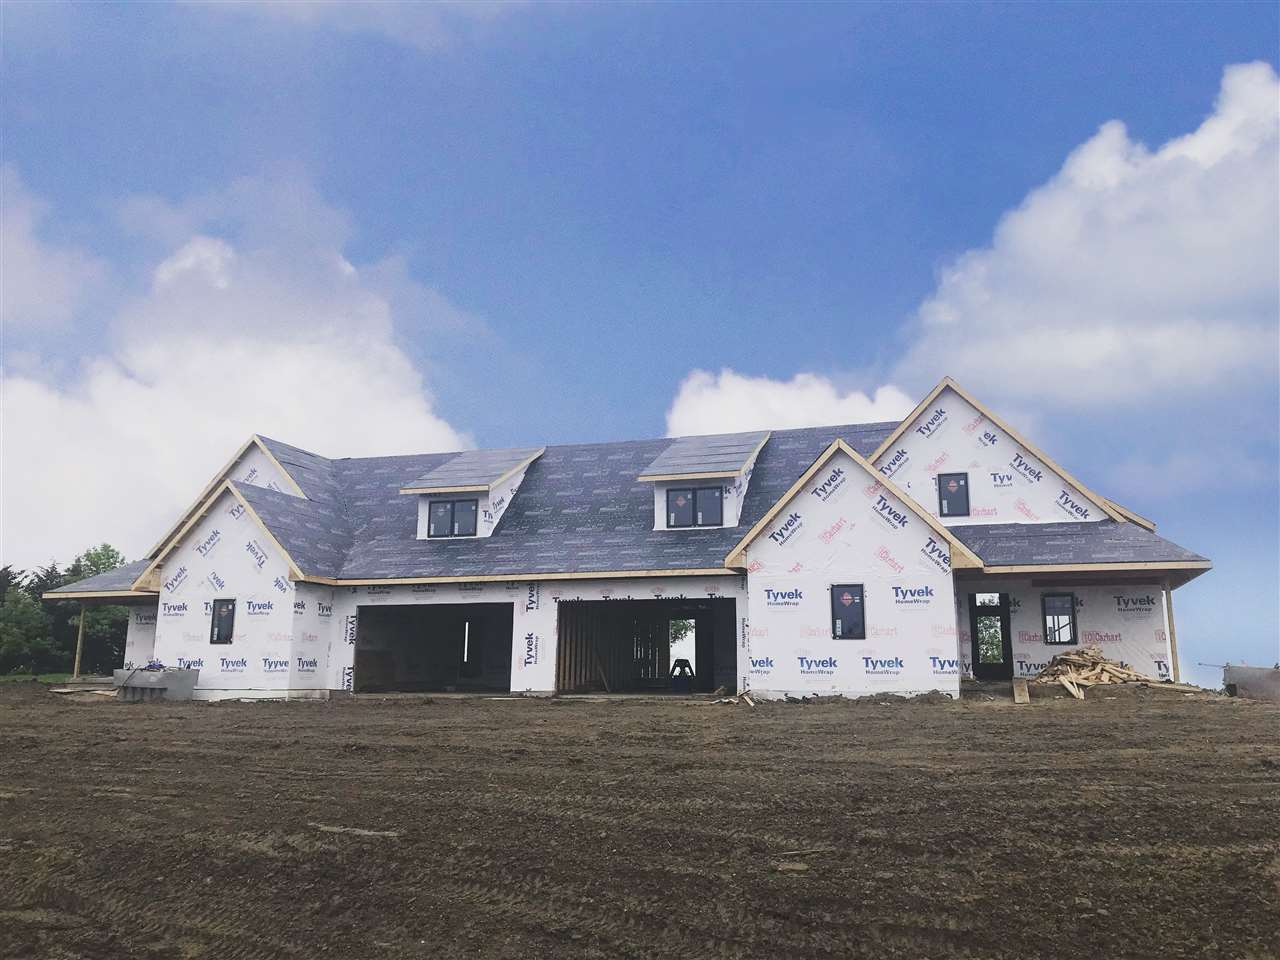 Property for sale at 233 Hide-a-way Drive, Crofton,  NE 68730